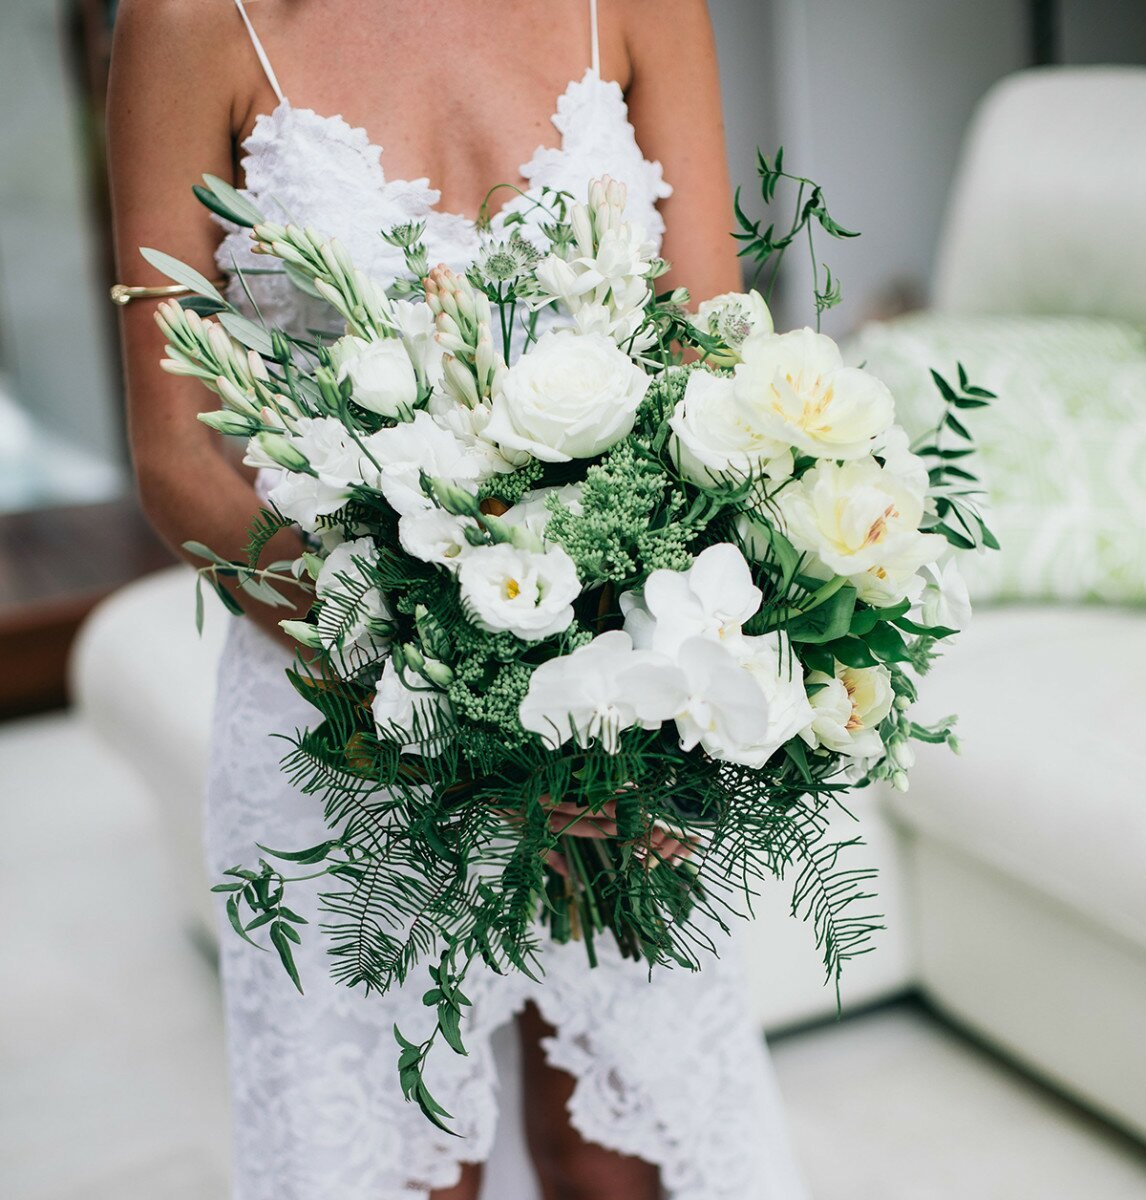 Profile Magazine Online willow-bud Bride Guide 2018: Flowers and Styling